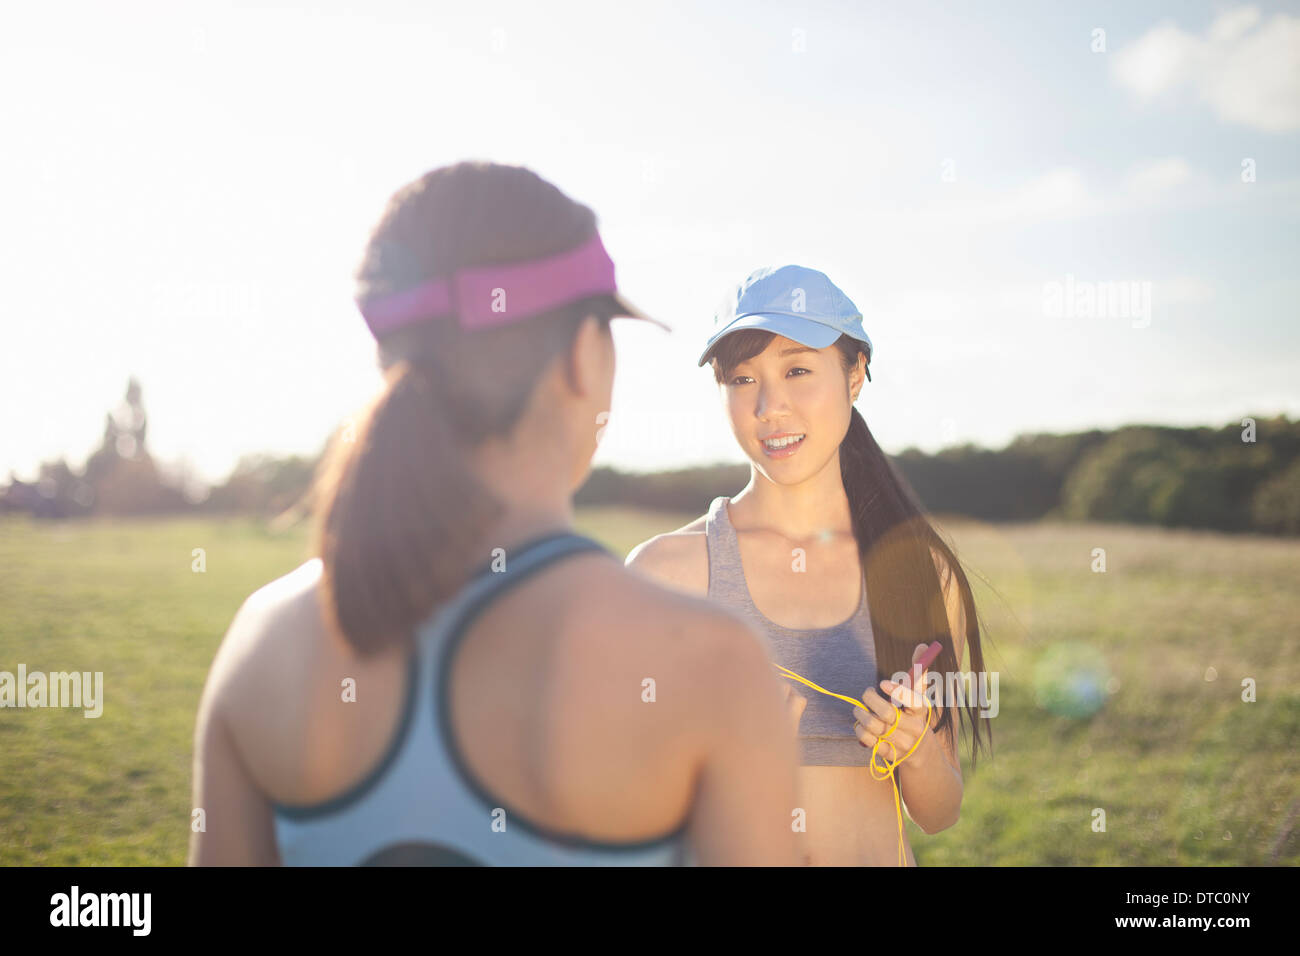 Two young female runners chatting - Stock Image